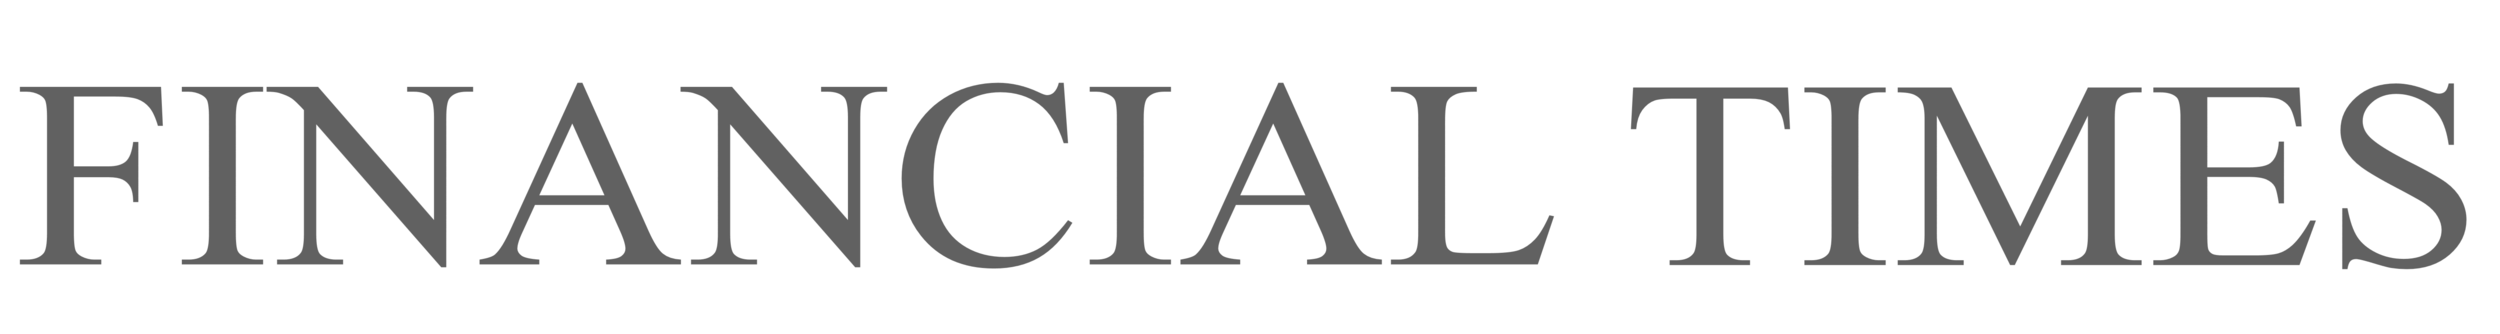 FT_The_Financial_Times_logo_wordmark.png